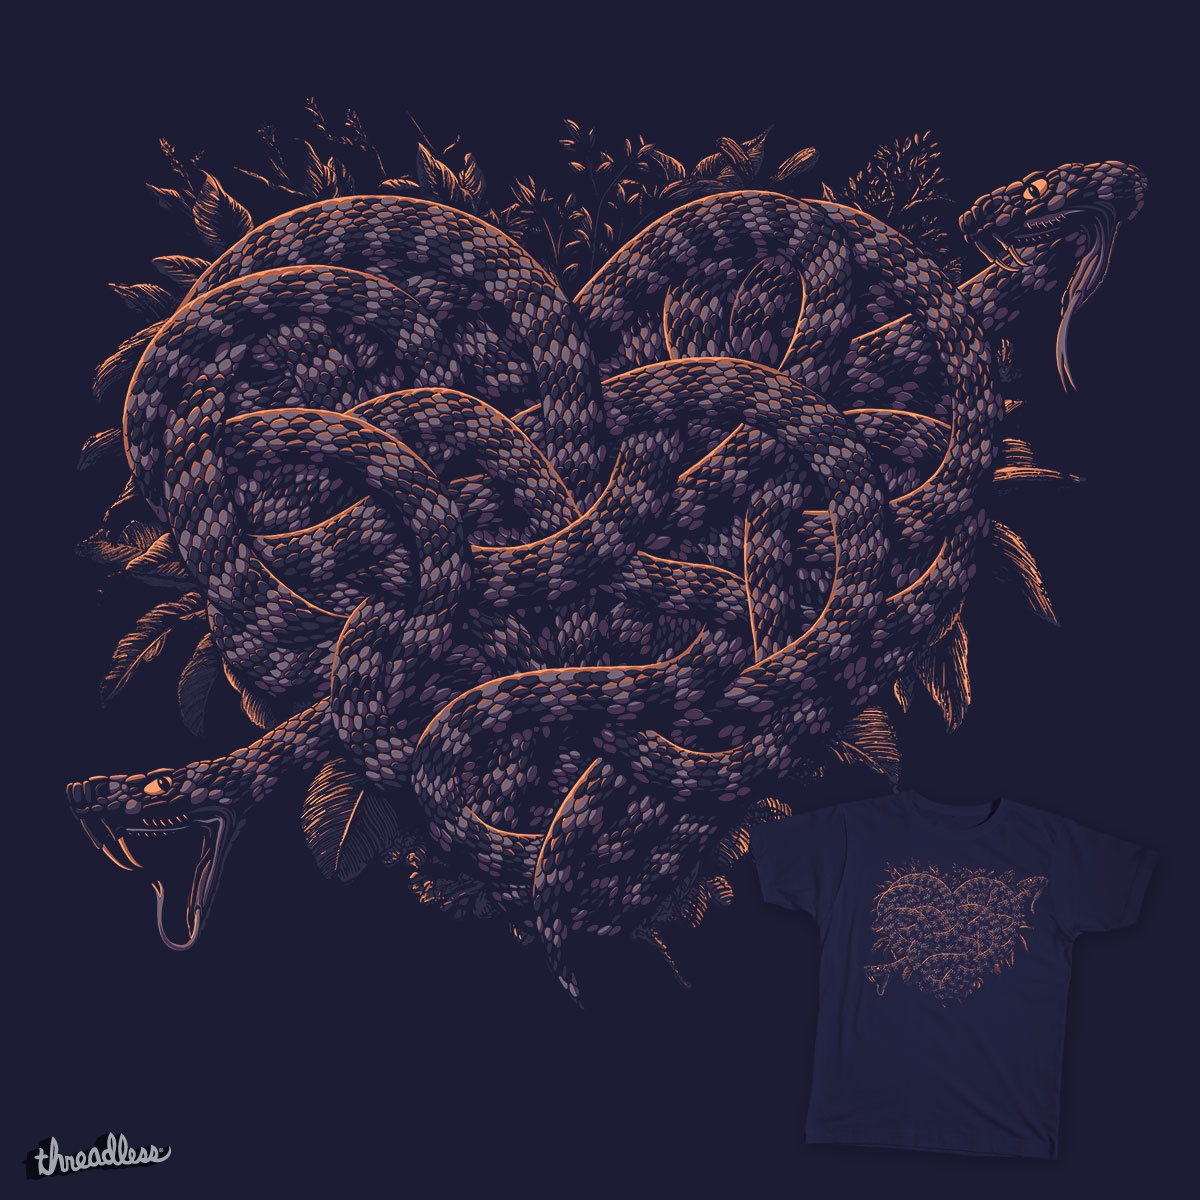 Love struck, a cool t-shirt design